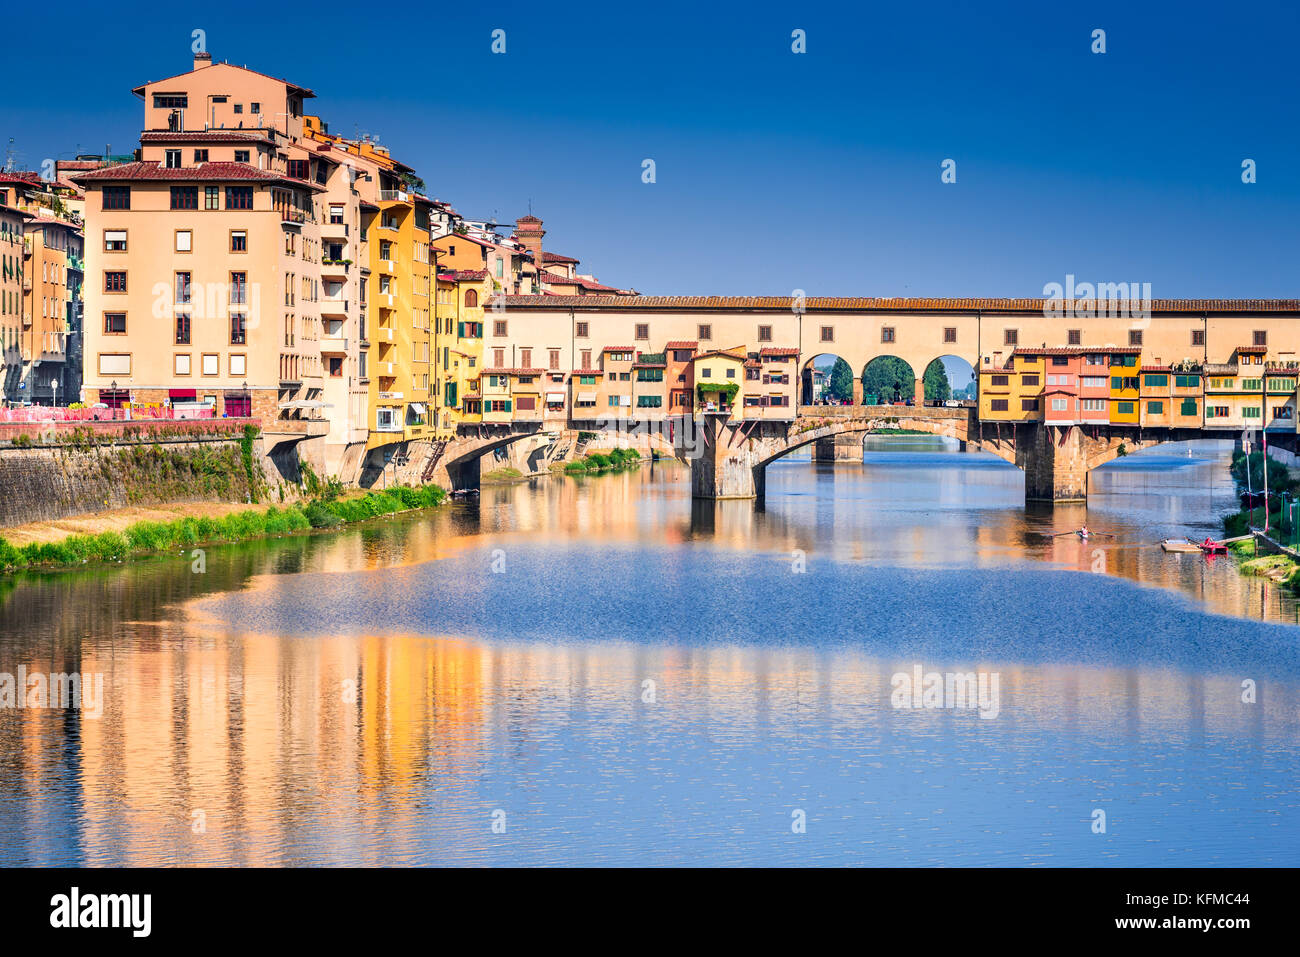 Florence, Tuscany - Ponte Vecchio, medieval bridge sunlighted over Arno River, Italy. - Stock Image